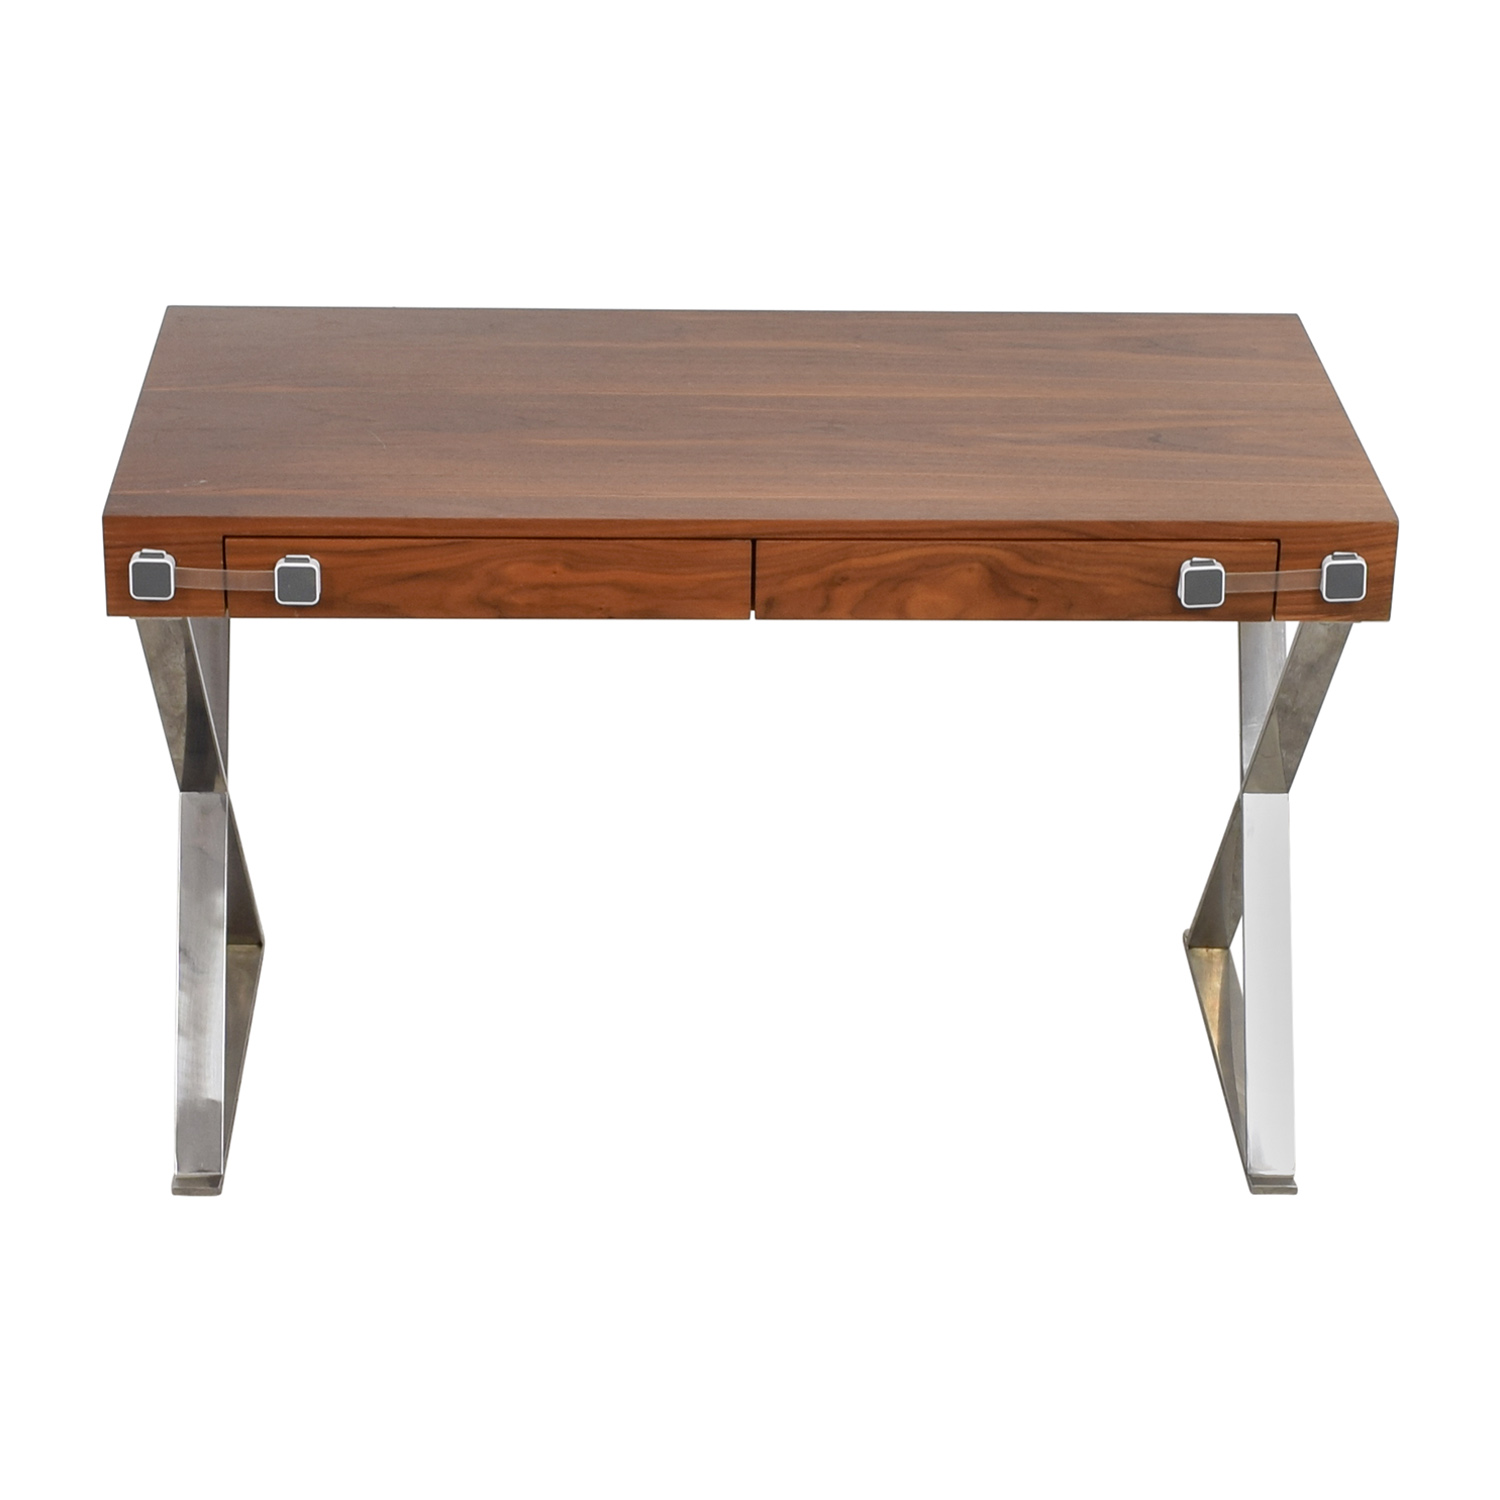 Pangea Home Pangea Home Wood and Metal X-Leg Desk nj